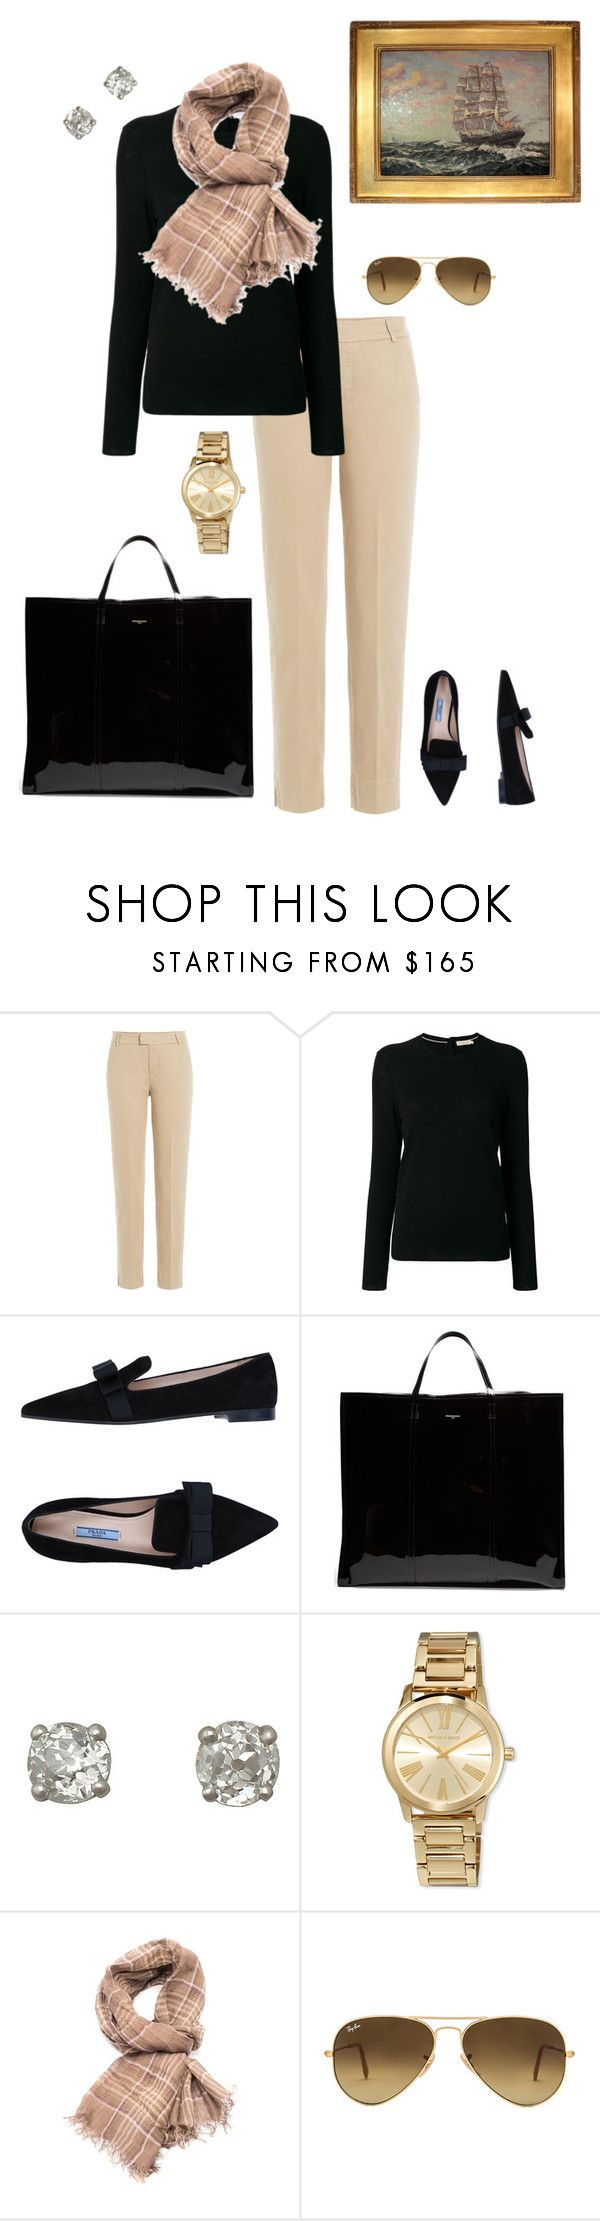 """Afternoon at the Museum"" by salemery on Polyvore featuring 7 For All Mankind, Tory Burch, Prada, Balenciaga, MICHAEL Michael Kors, Brunello Cucinelli and Ray-Ban"